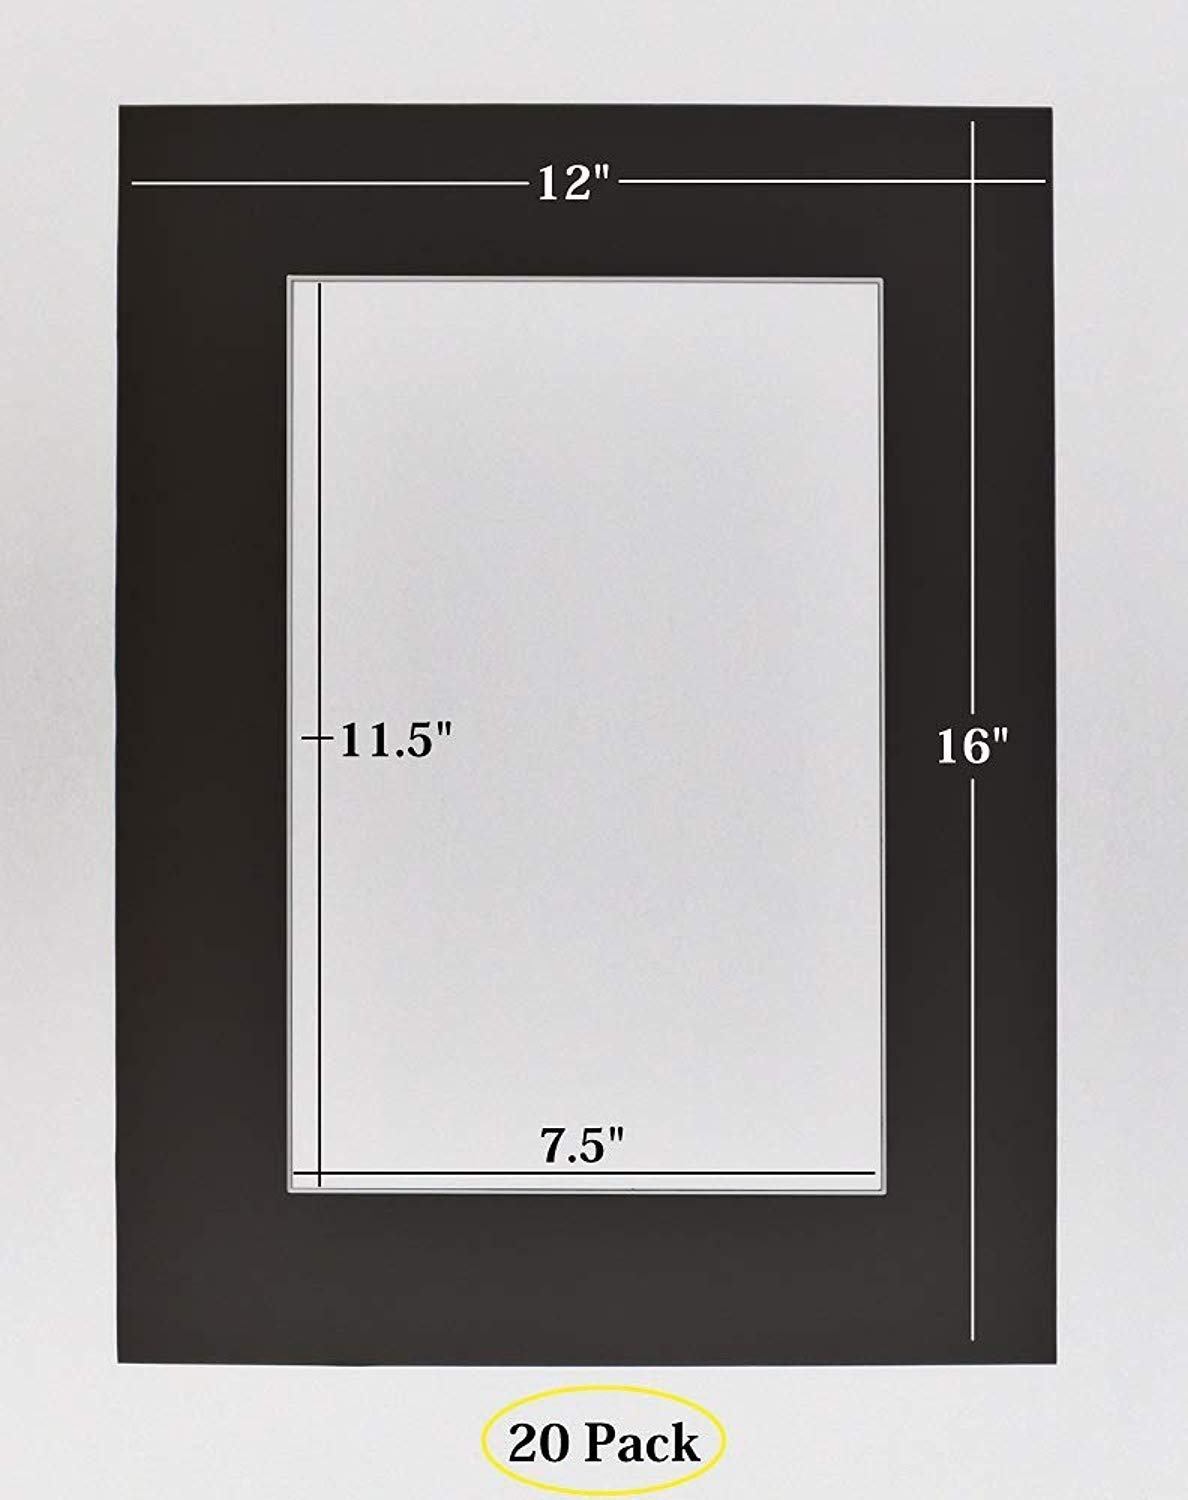 Pack of 20 12x16 Black Picture Mats with White Core Bevel Cut for 8x12 Pictures Golden State Art